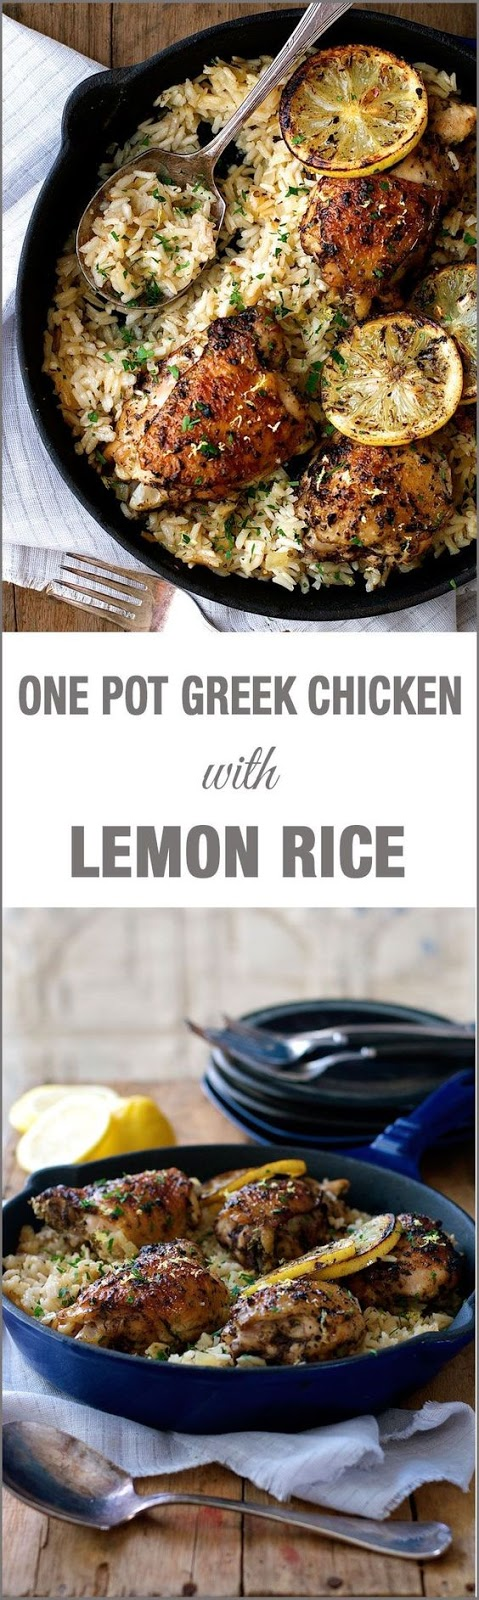 One Pot Greek Chicken & Lemon Rice